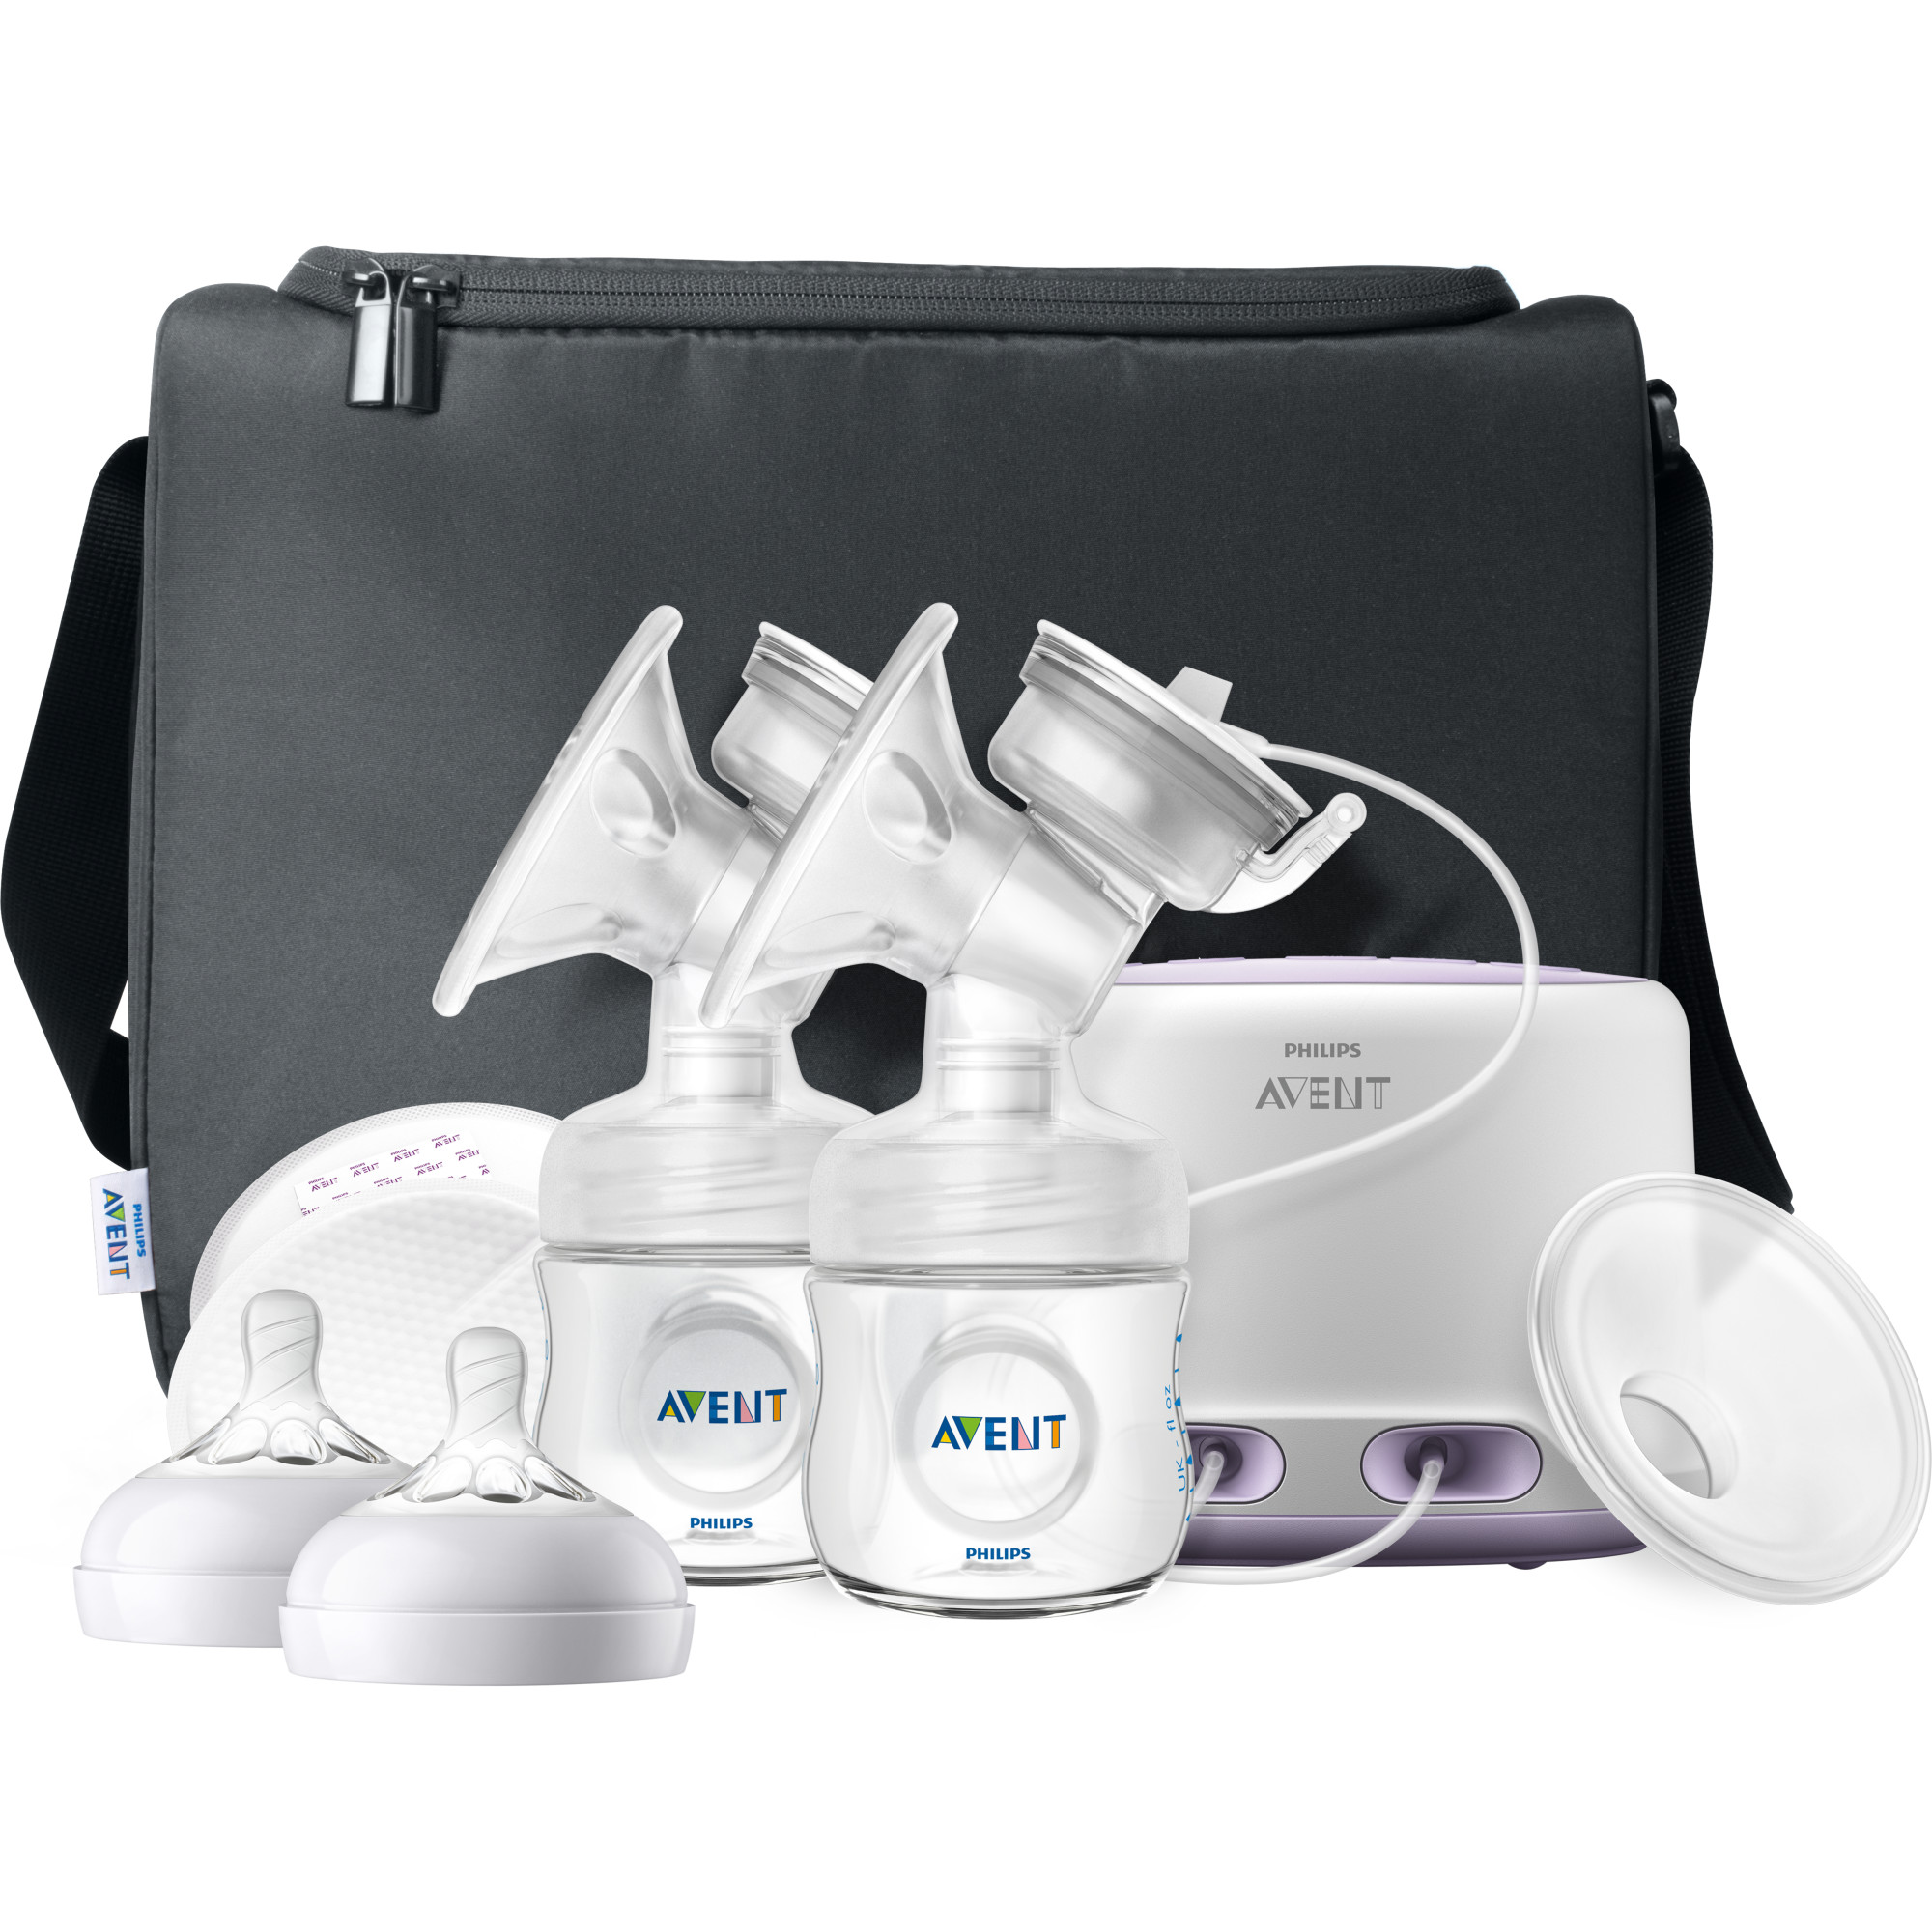 Philips Avent Cushion for Breast Pump